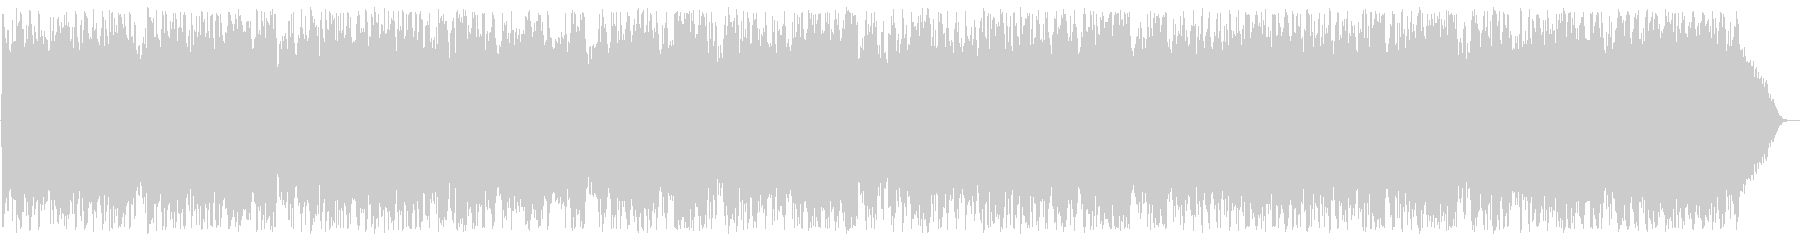 The Lord that gives perfect love (Hymns)'s unreproduced waveform